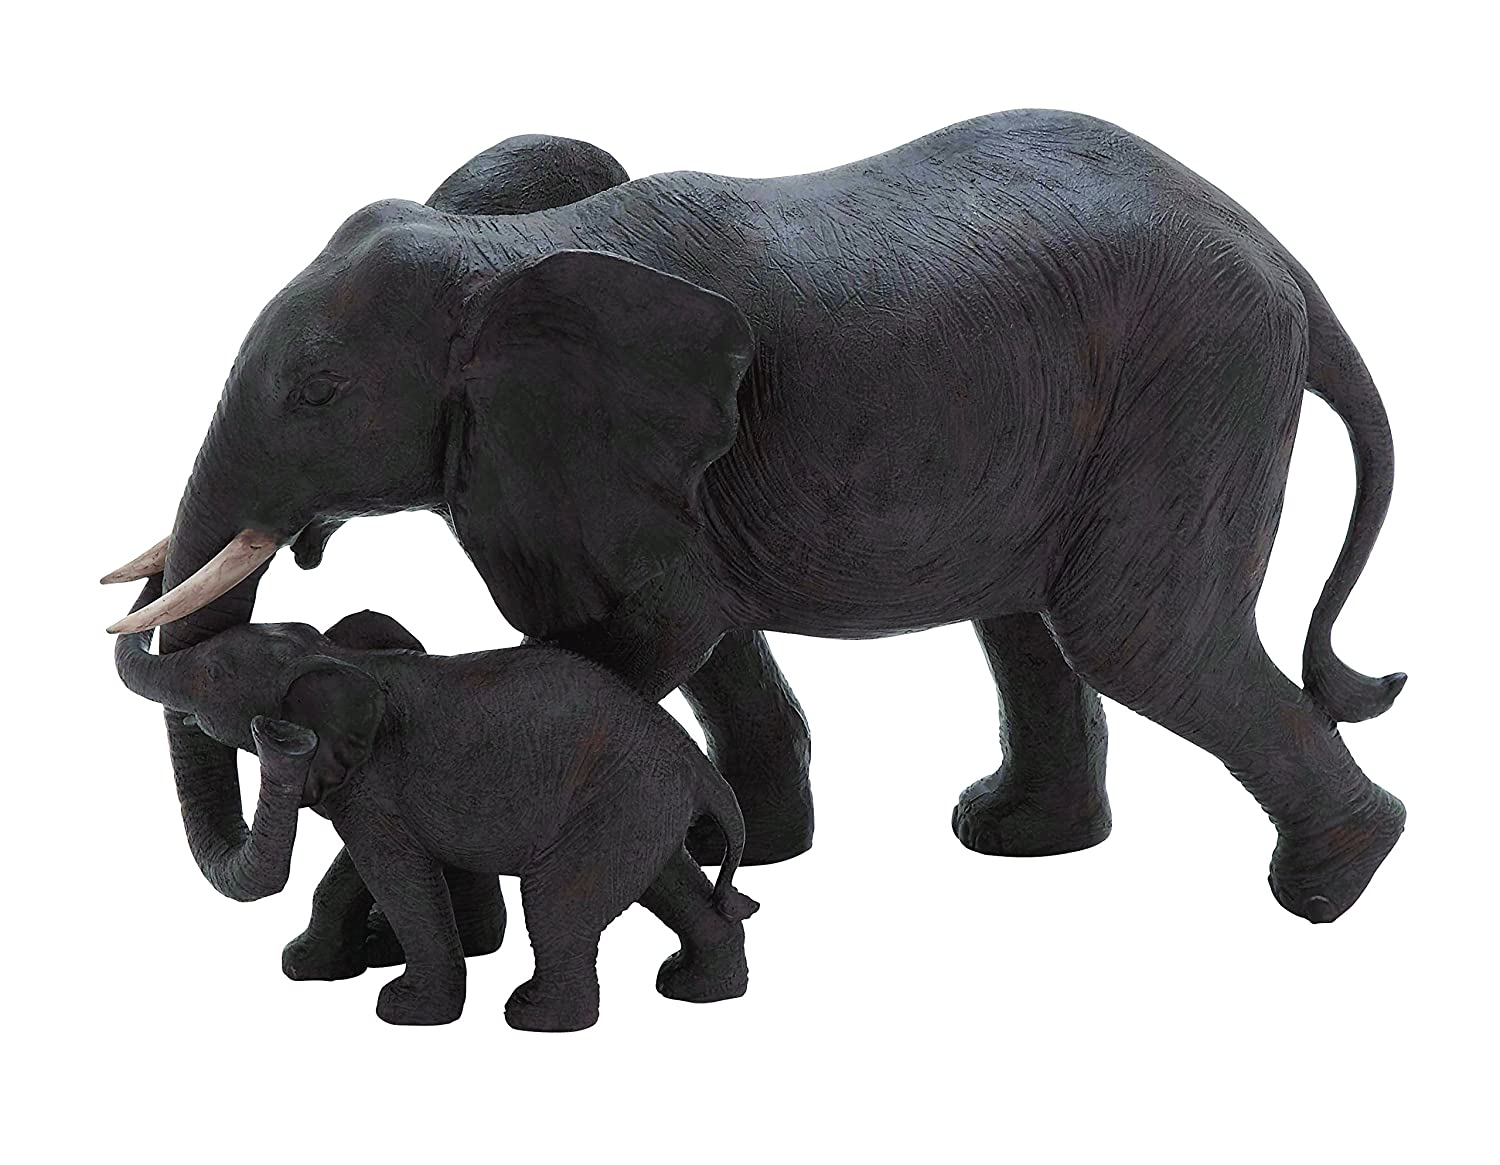 Elephant Statues For Sale